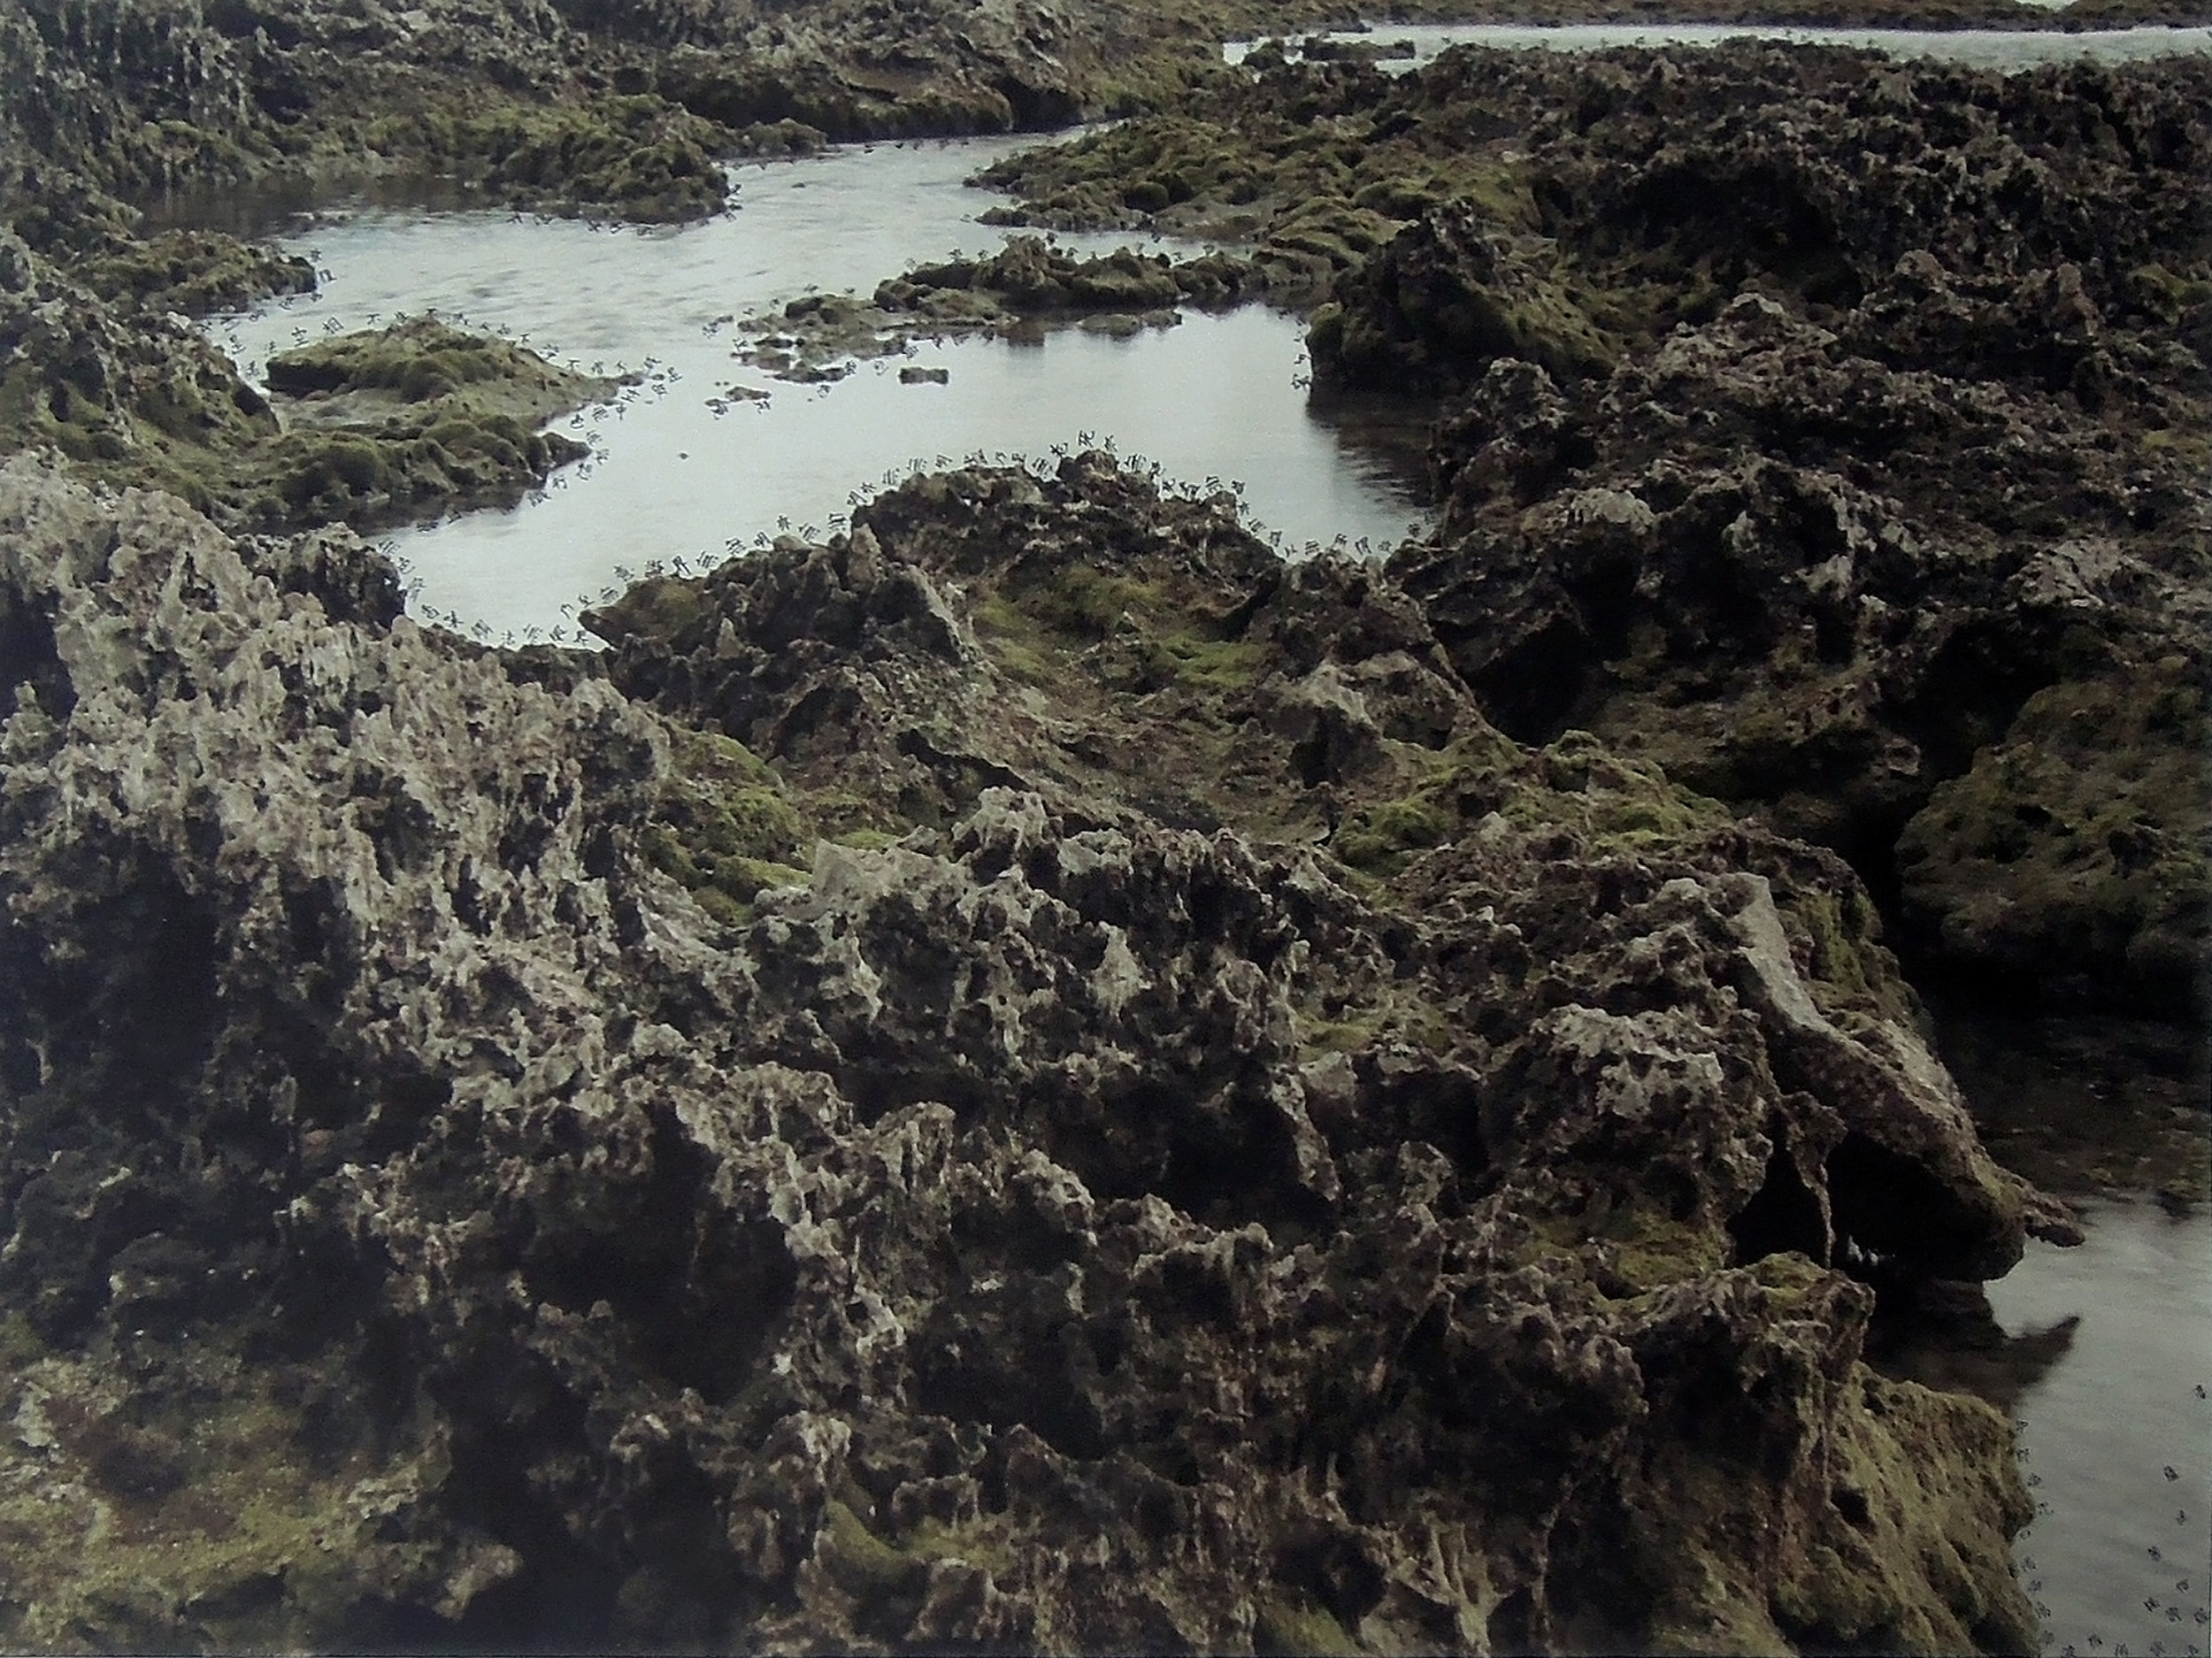 2012, Lanyu VII, hand inscribed photograph, 120x150 cm